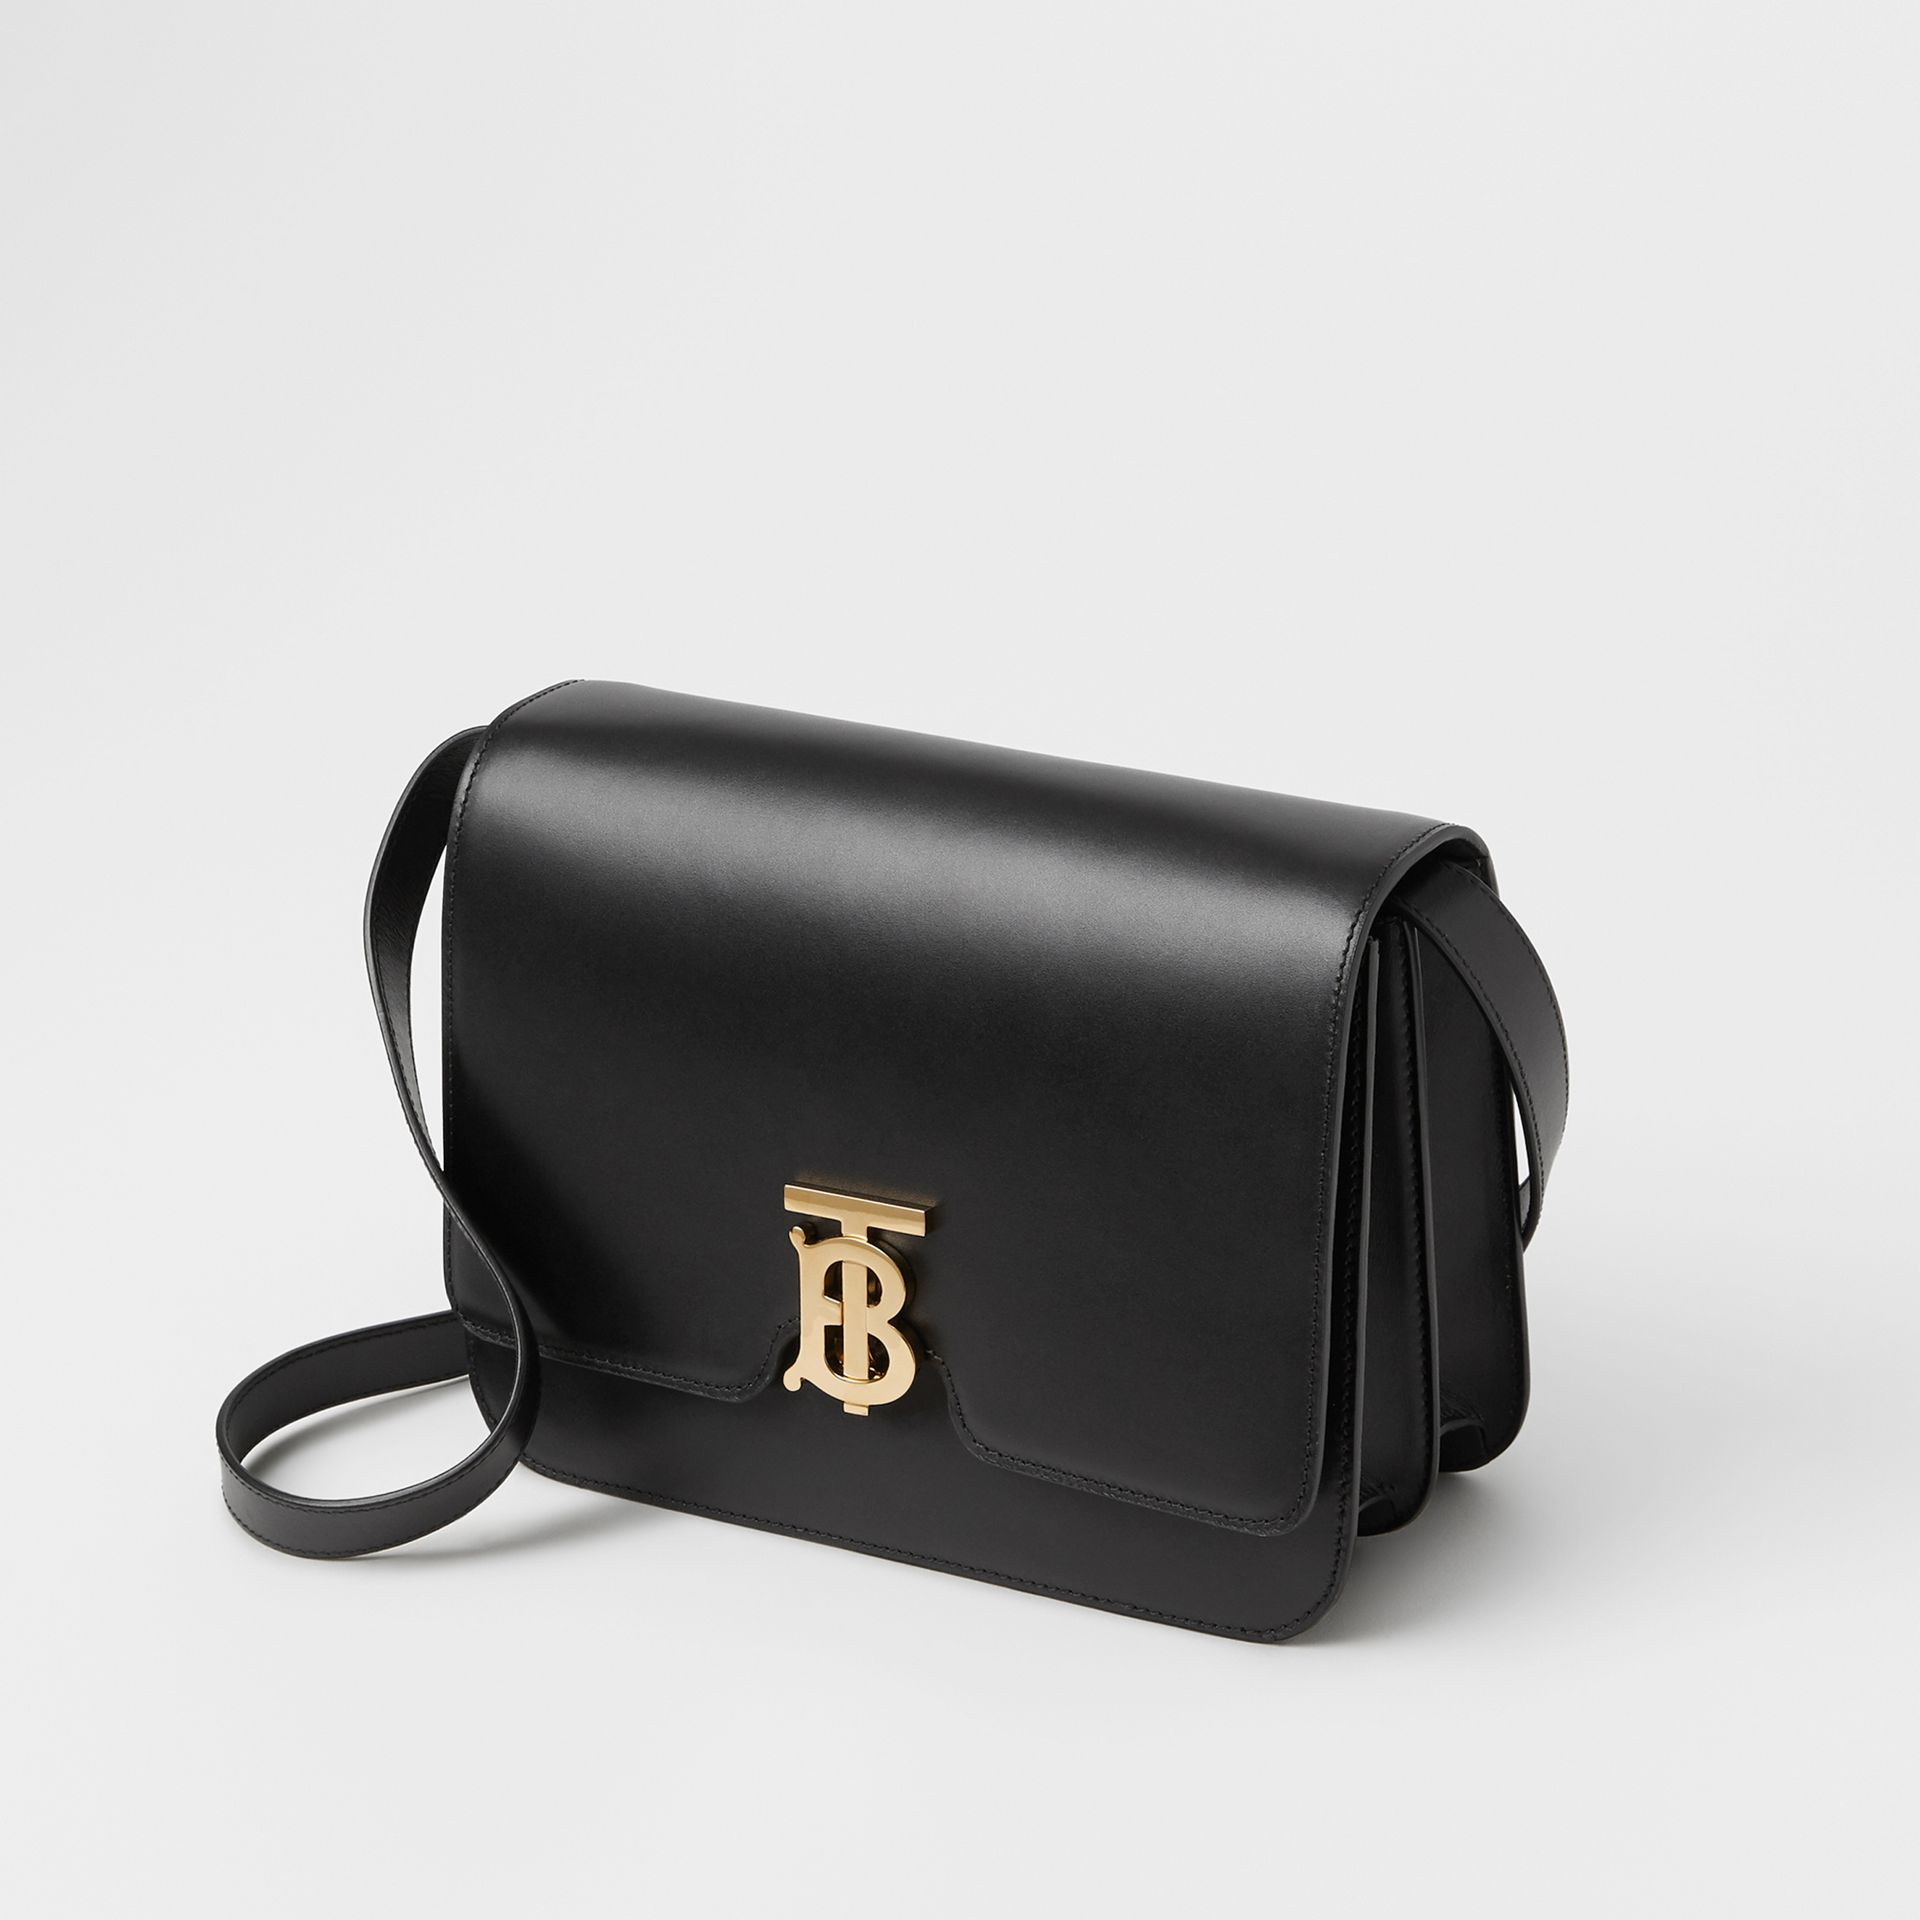 Medium Leather TB Bag in Black - Women | Burberry - gallery image 4